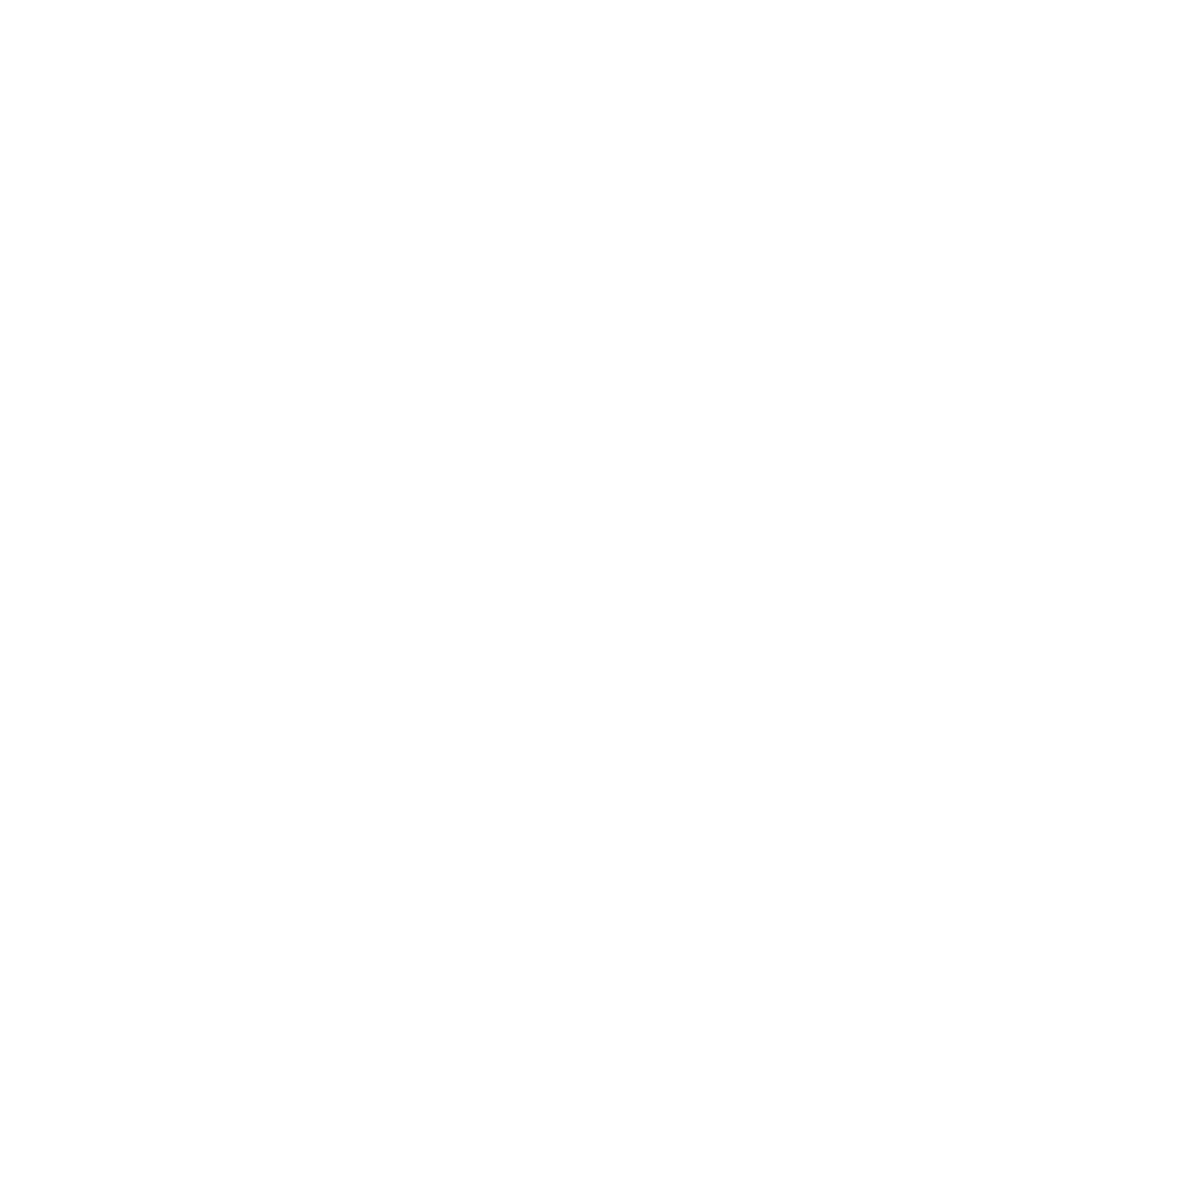 Network child care services. Hourglass clipart basic